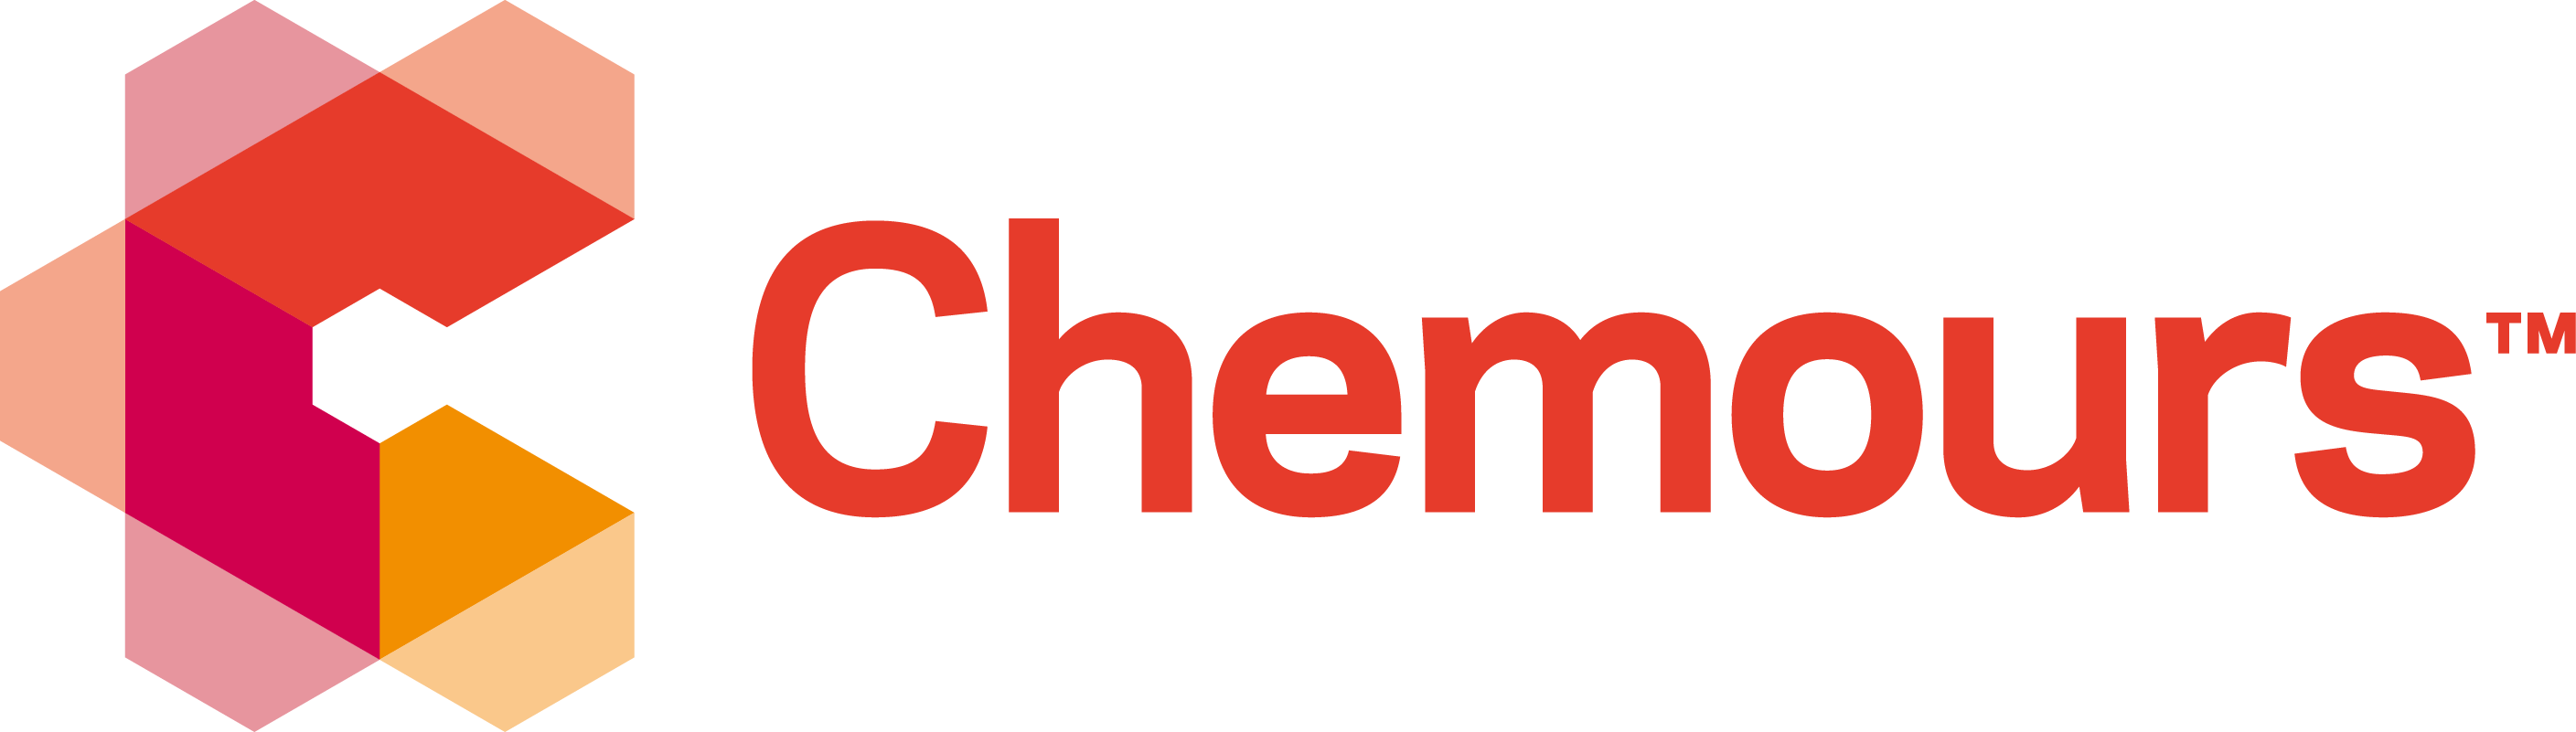 Chemours Logo png